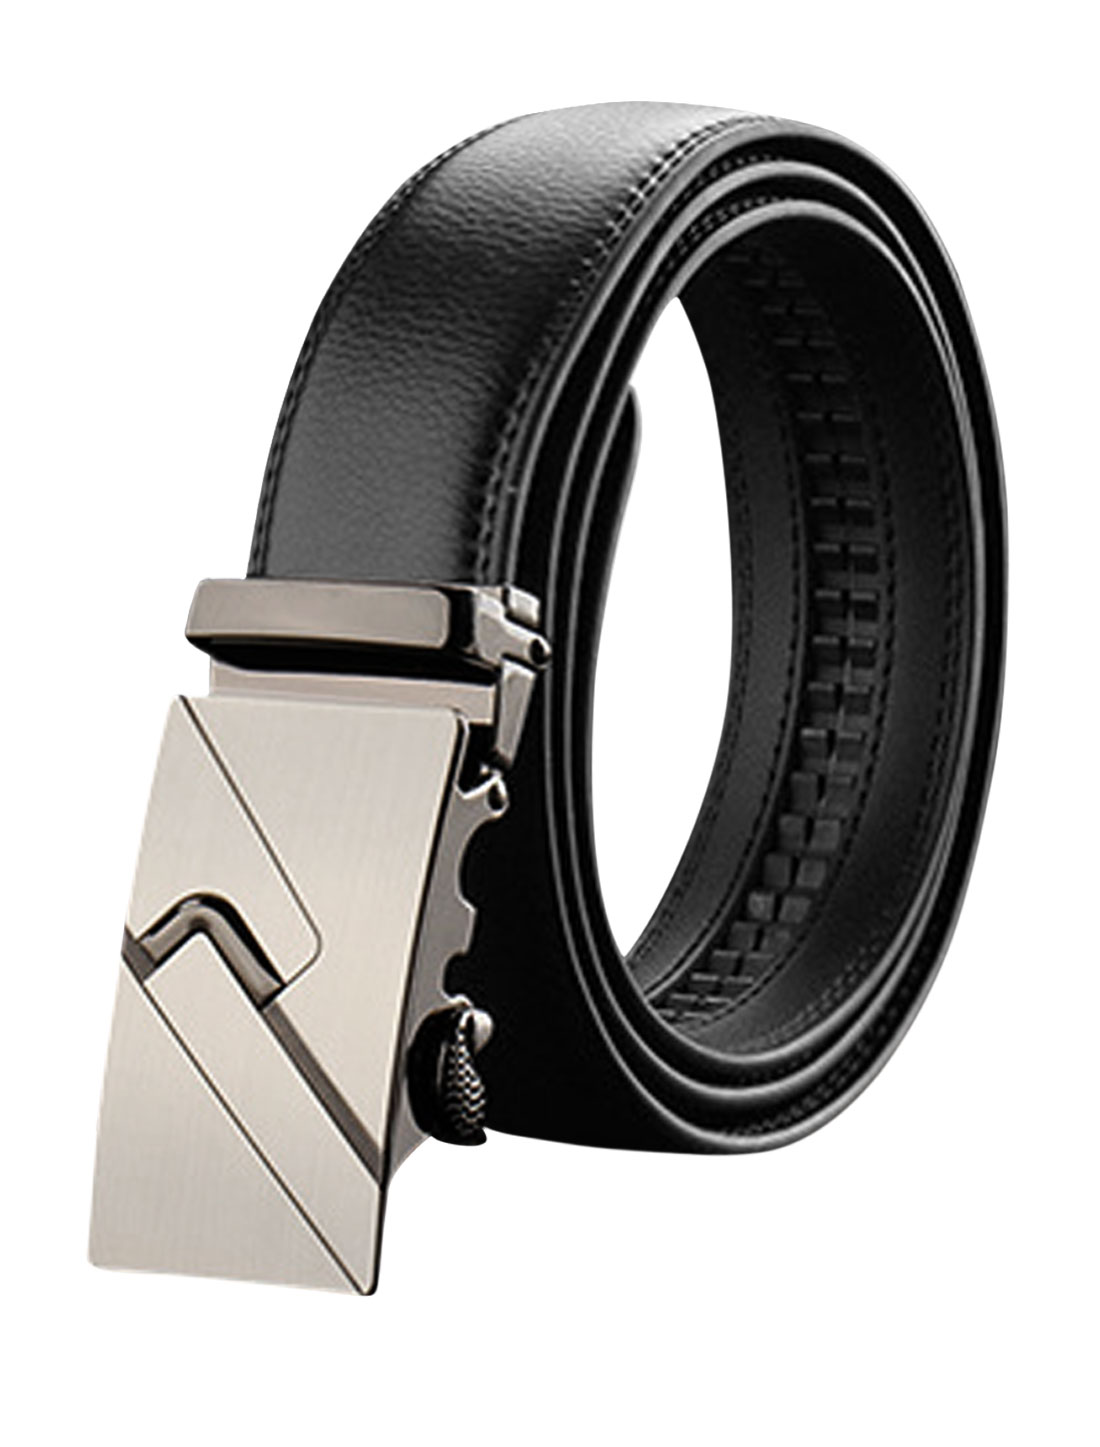 Men Sliding Buckle Holeless Adjustable PU Ratchet Belt Black 125CM